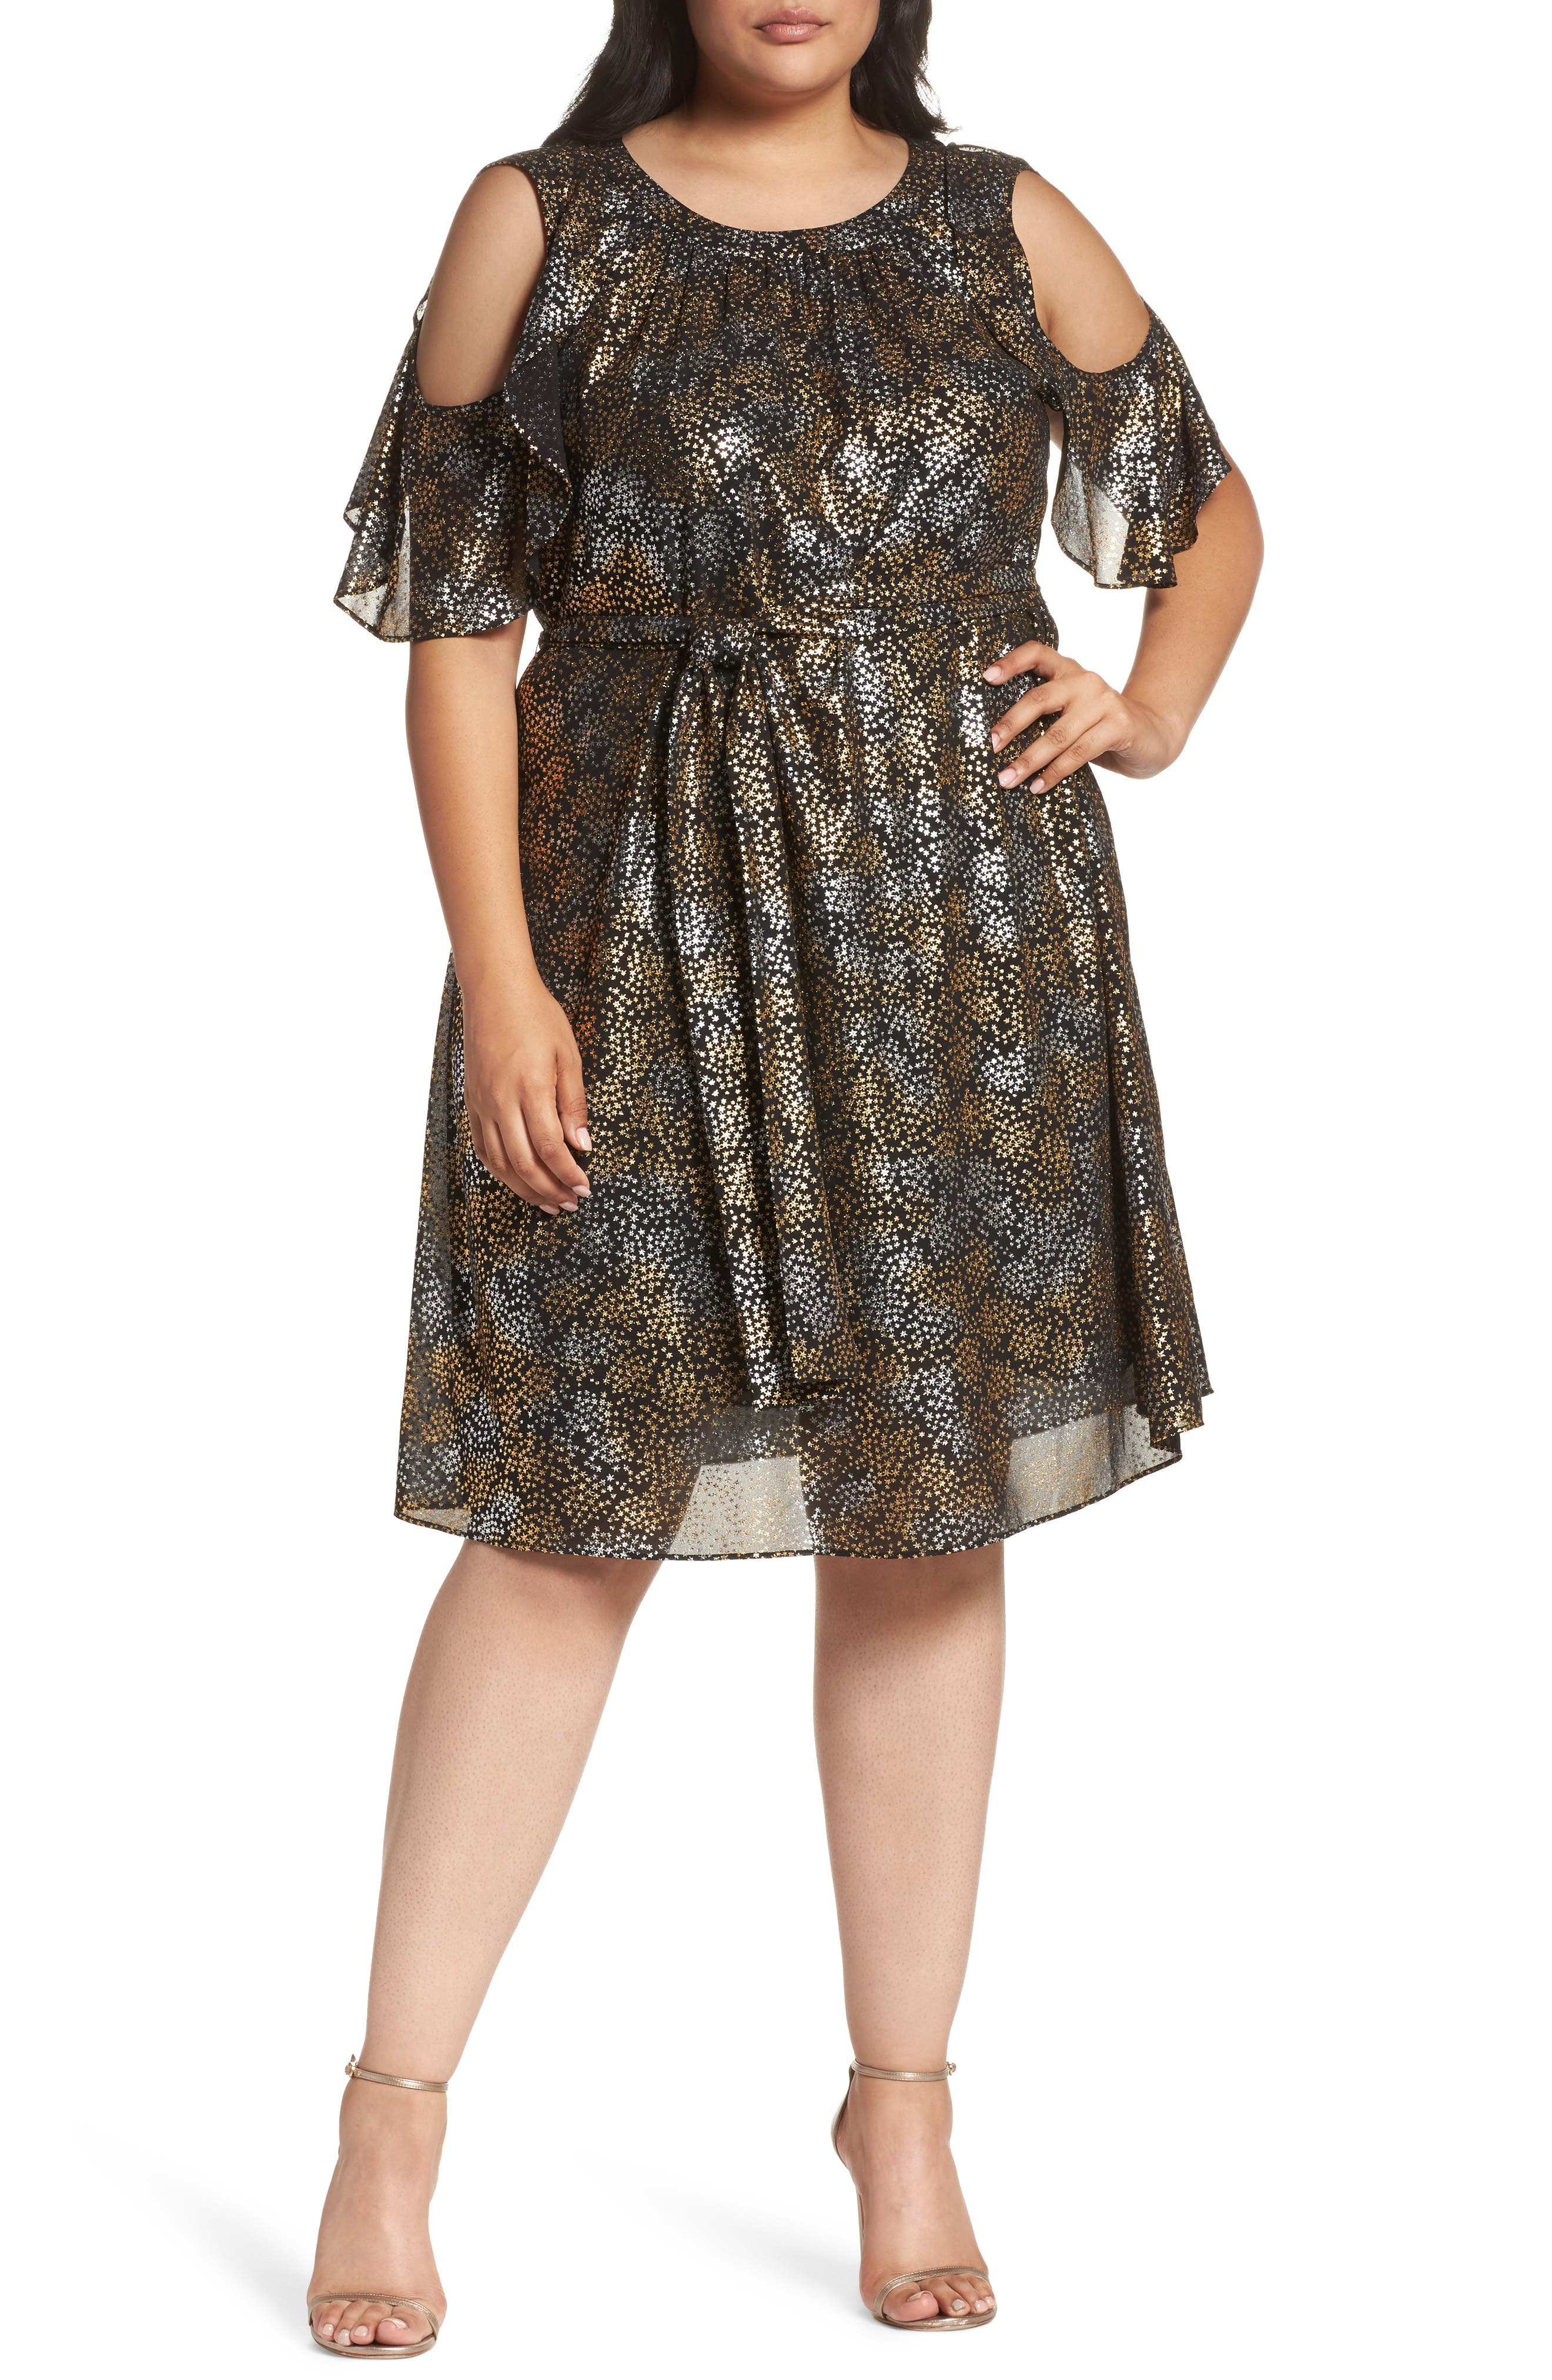 Alternate Image 1 Selected - MICHAEL Michael Kors Cold Shoulder Metallic Star A-Line Dress (Plus Size)